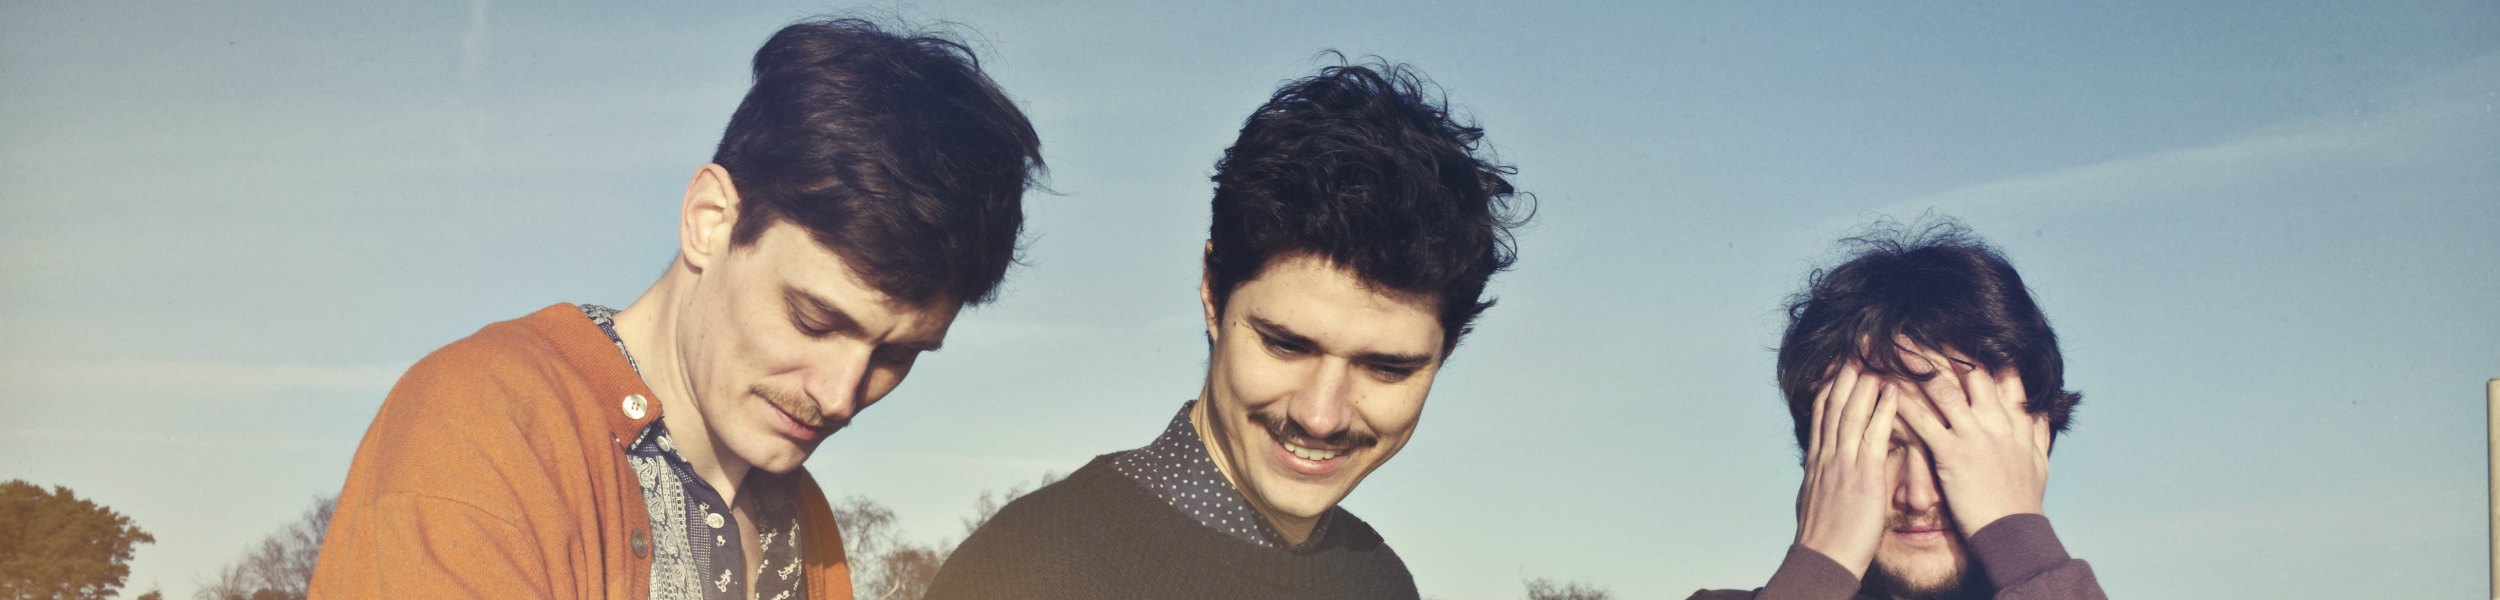 Efterklang - Efterklang Launch Online Radio Station 'The Lake'